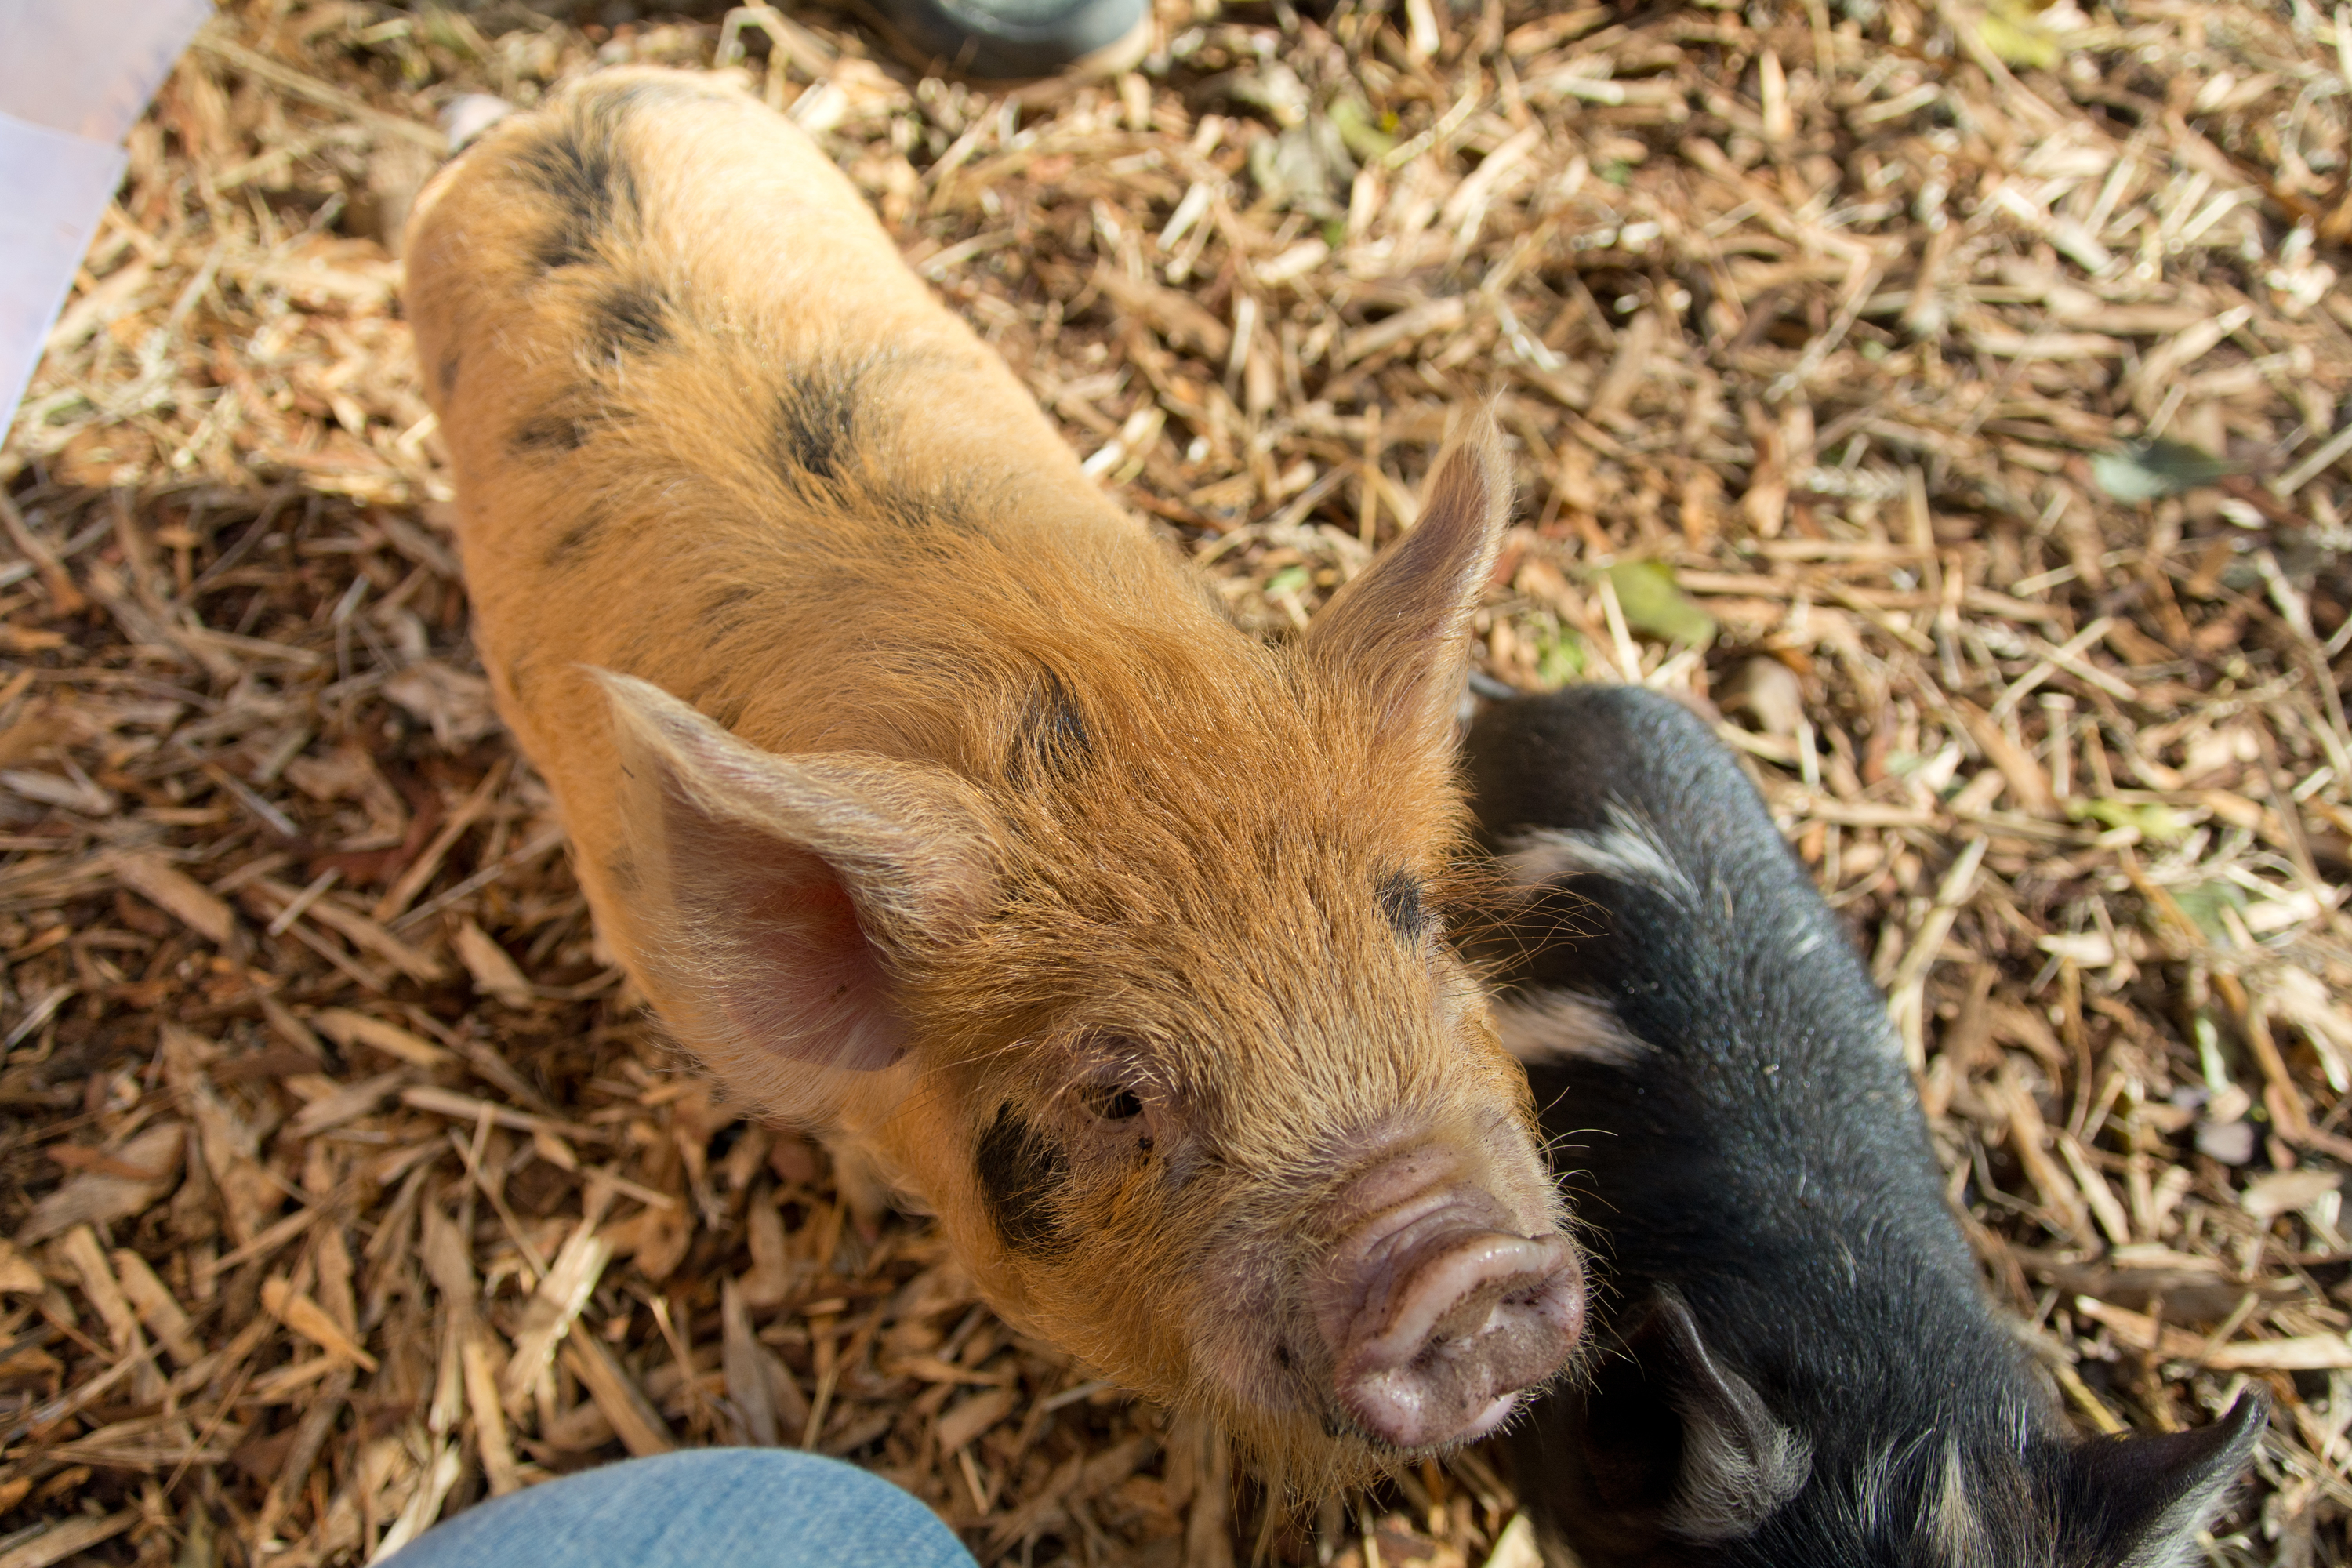 Young pigs can understand and copy actions of older pigs just by watching (Vetmeduni Vienna)